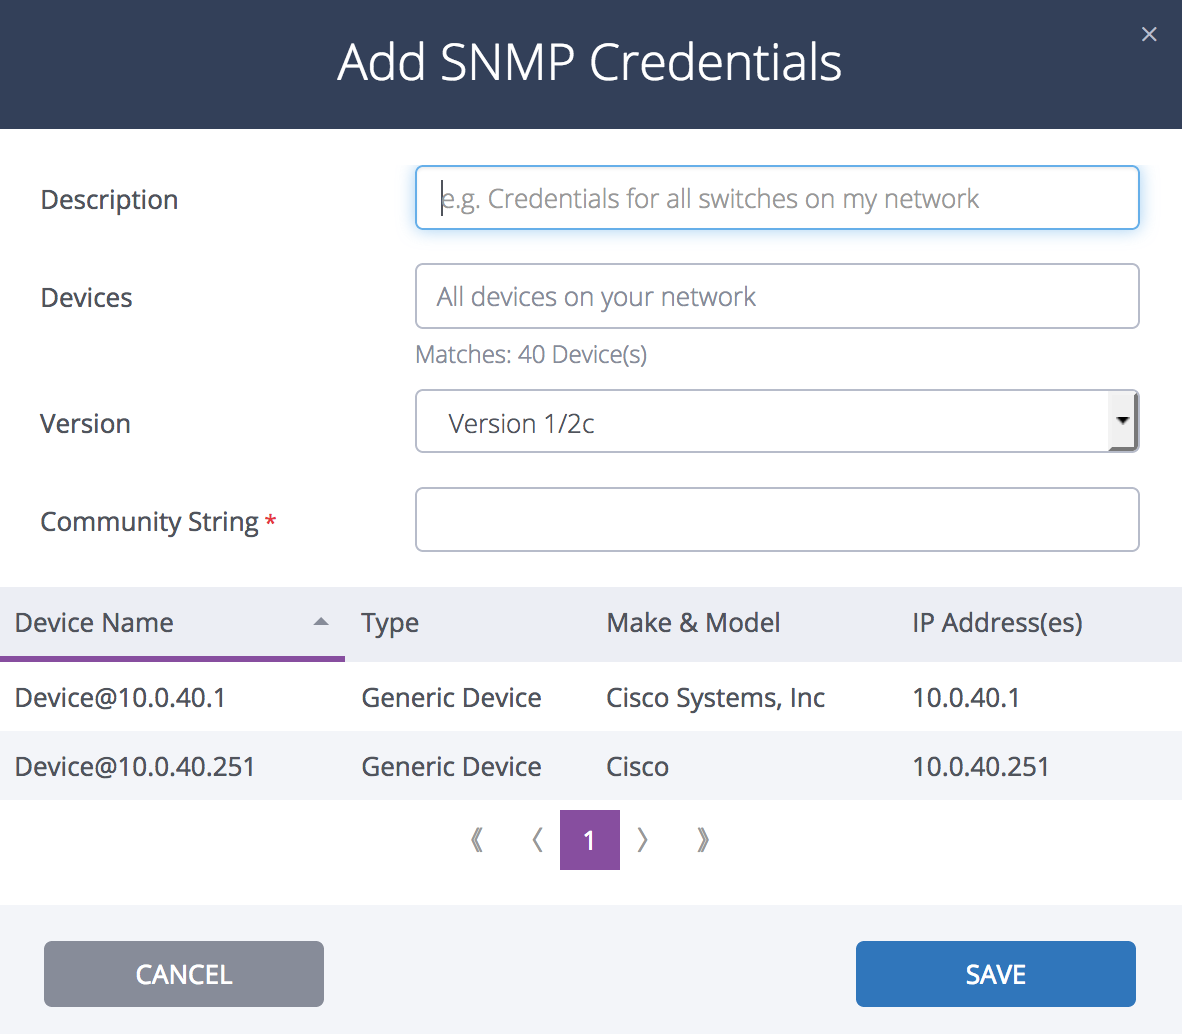 How do I add, edit, delete, or retry SNMP credentials